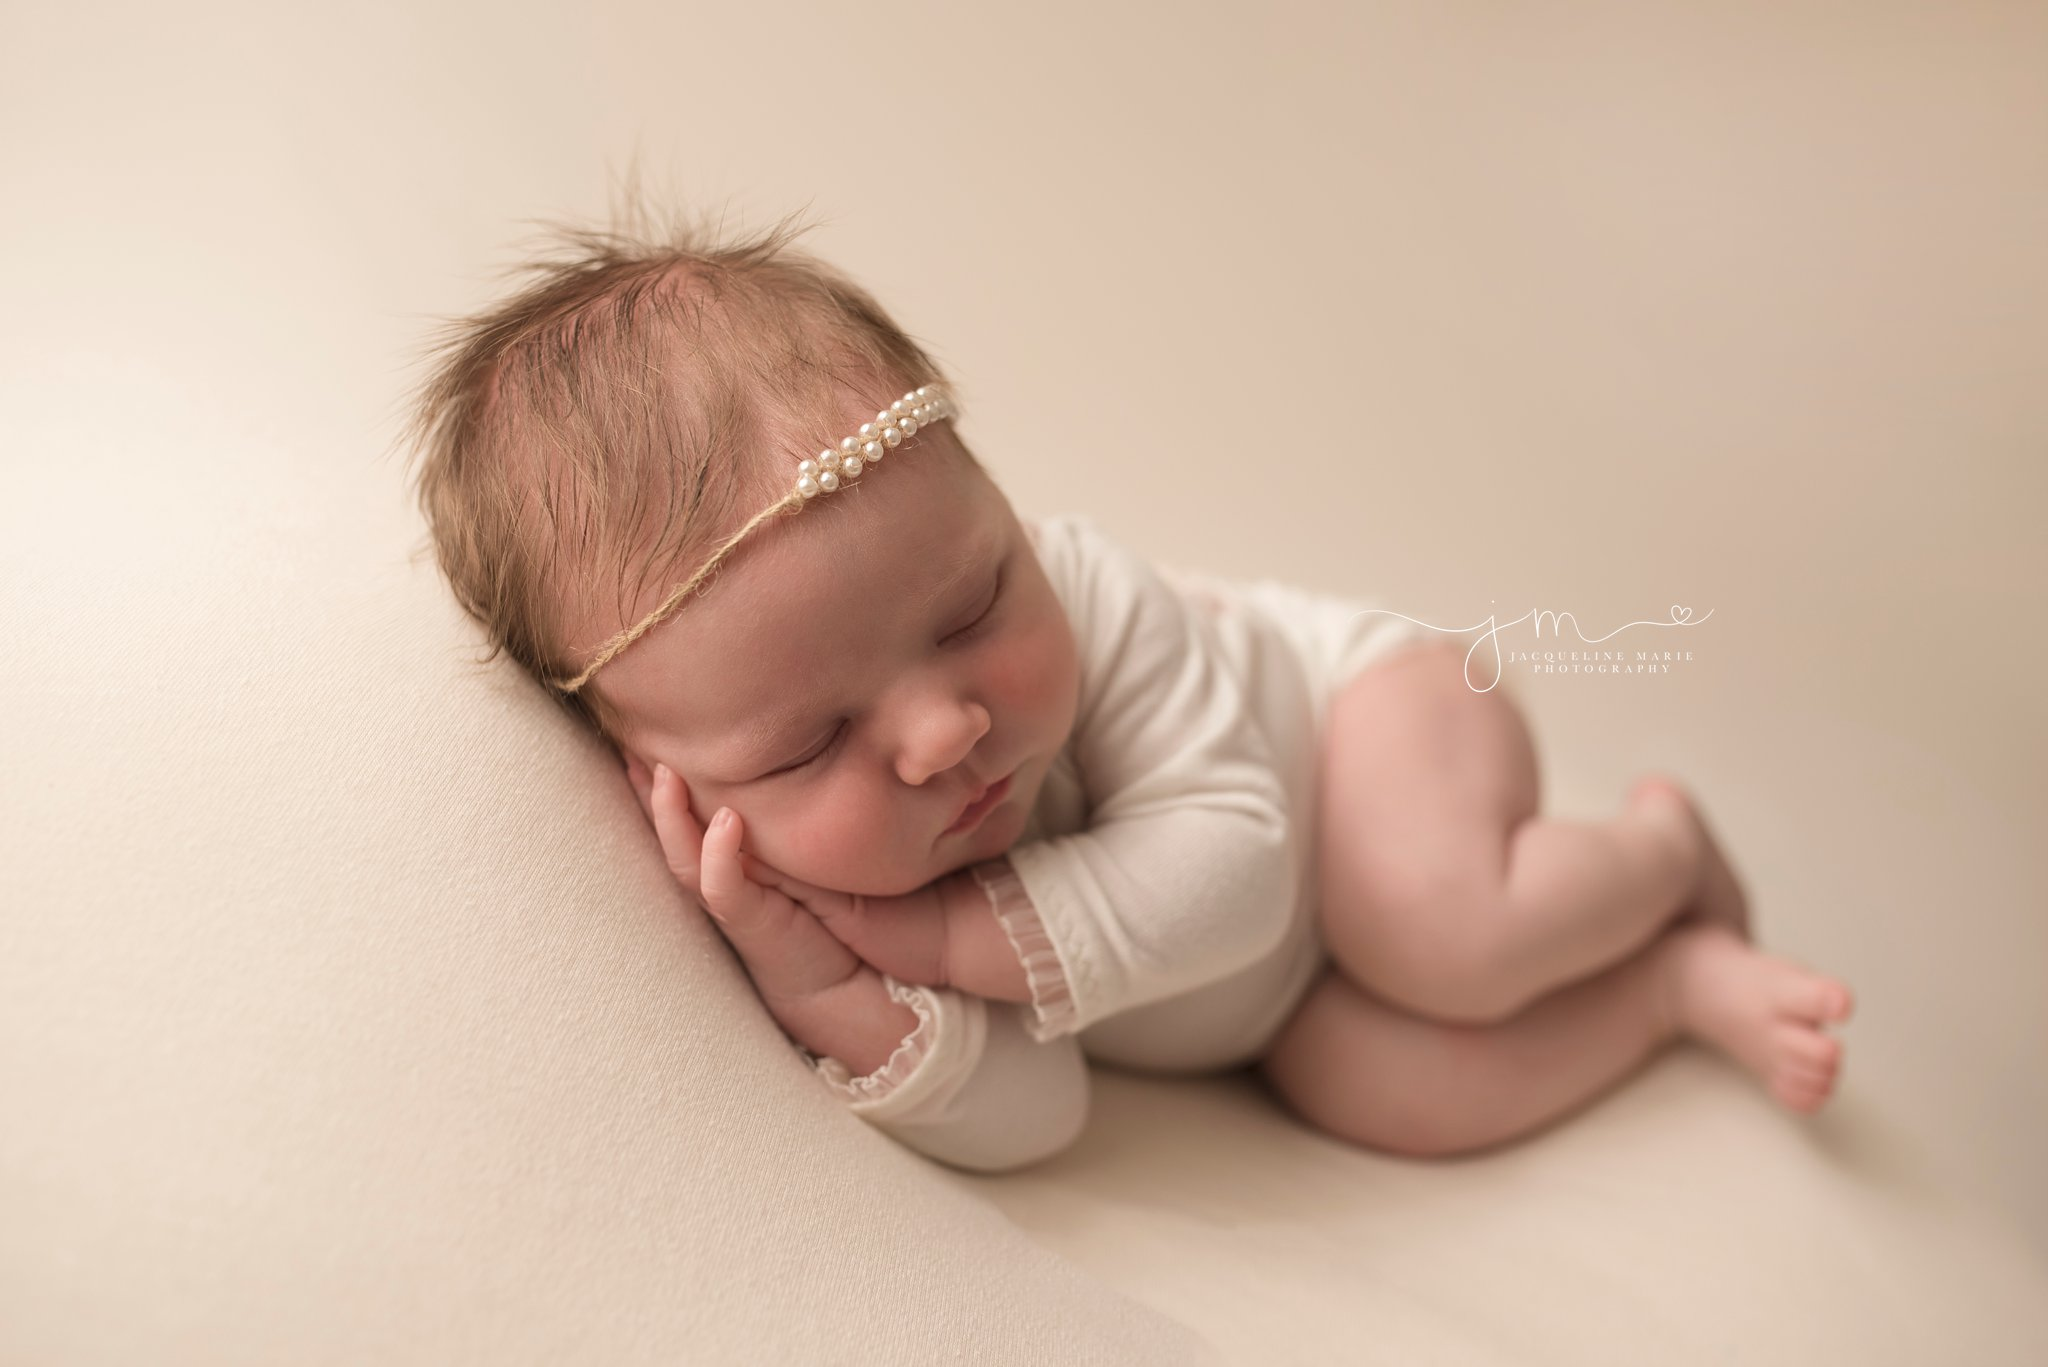 columbus ohio newborn photographer features baby girl wearing pearl headband while sleeping